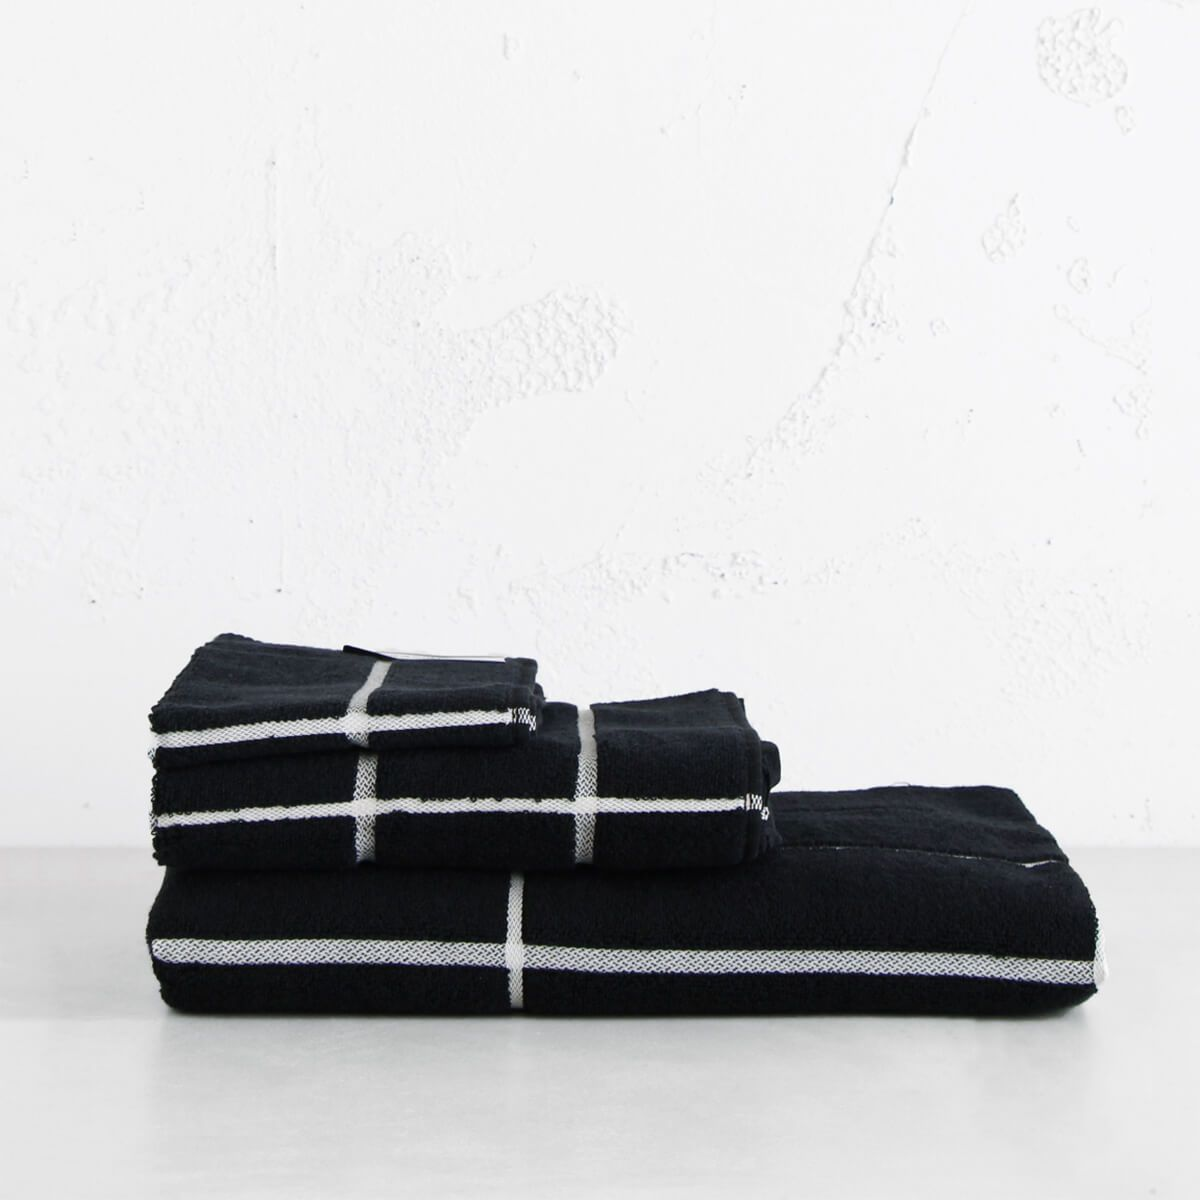 MARIMEKKO  |  TIILISKIVI BATH TOWEL BUNDLE SINGLE  |  BLACK AND WHITE